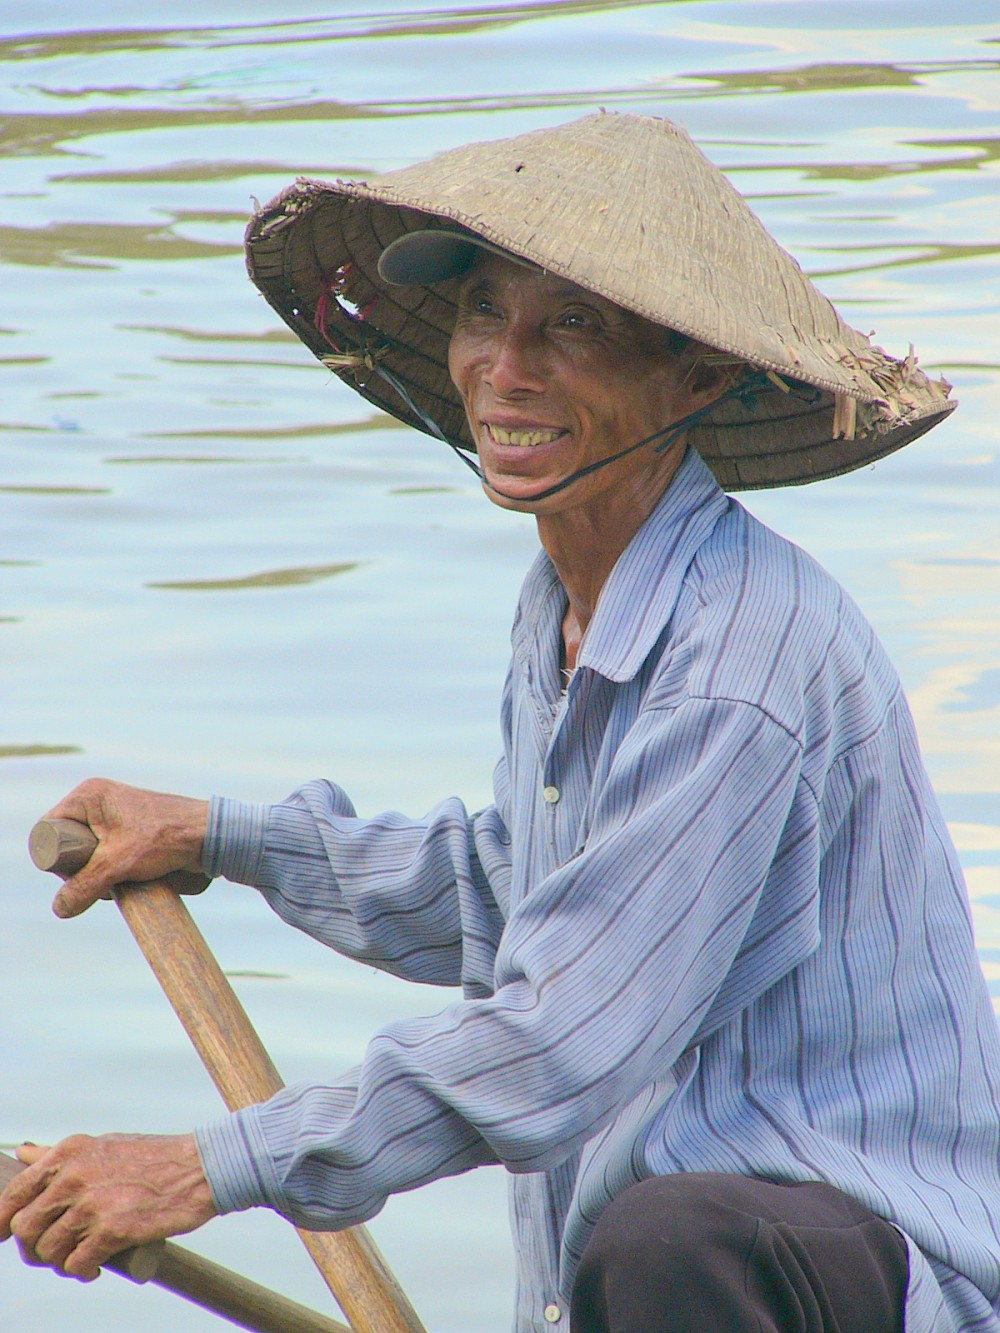 Boat Rower